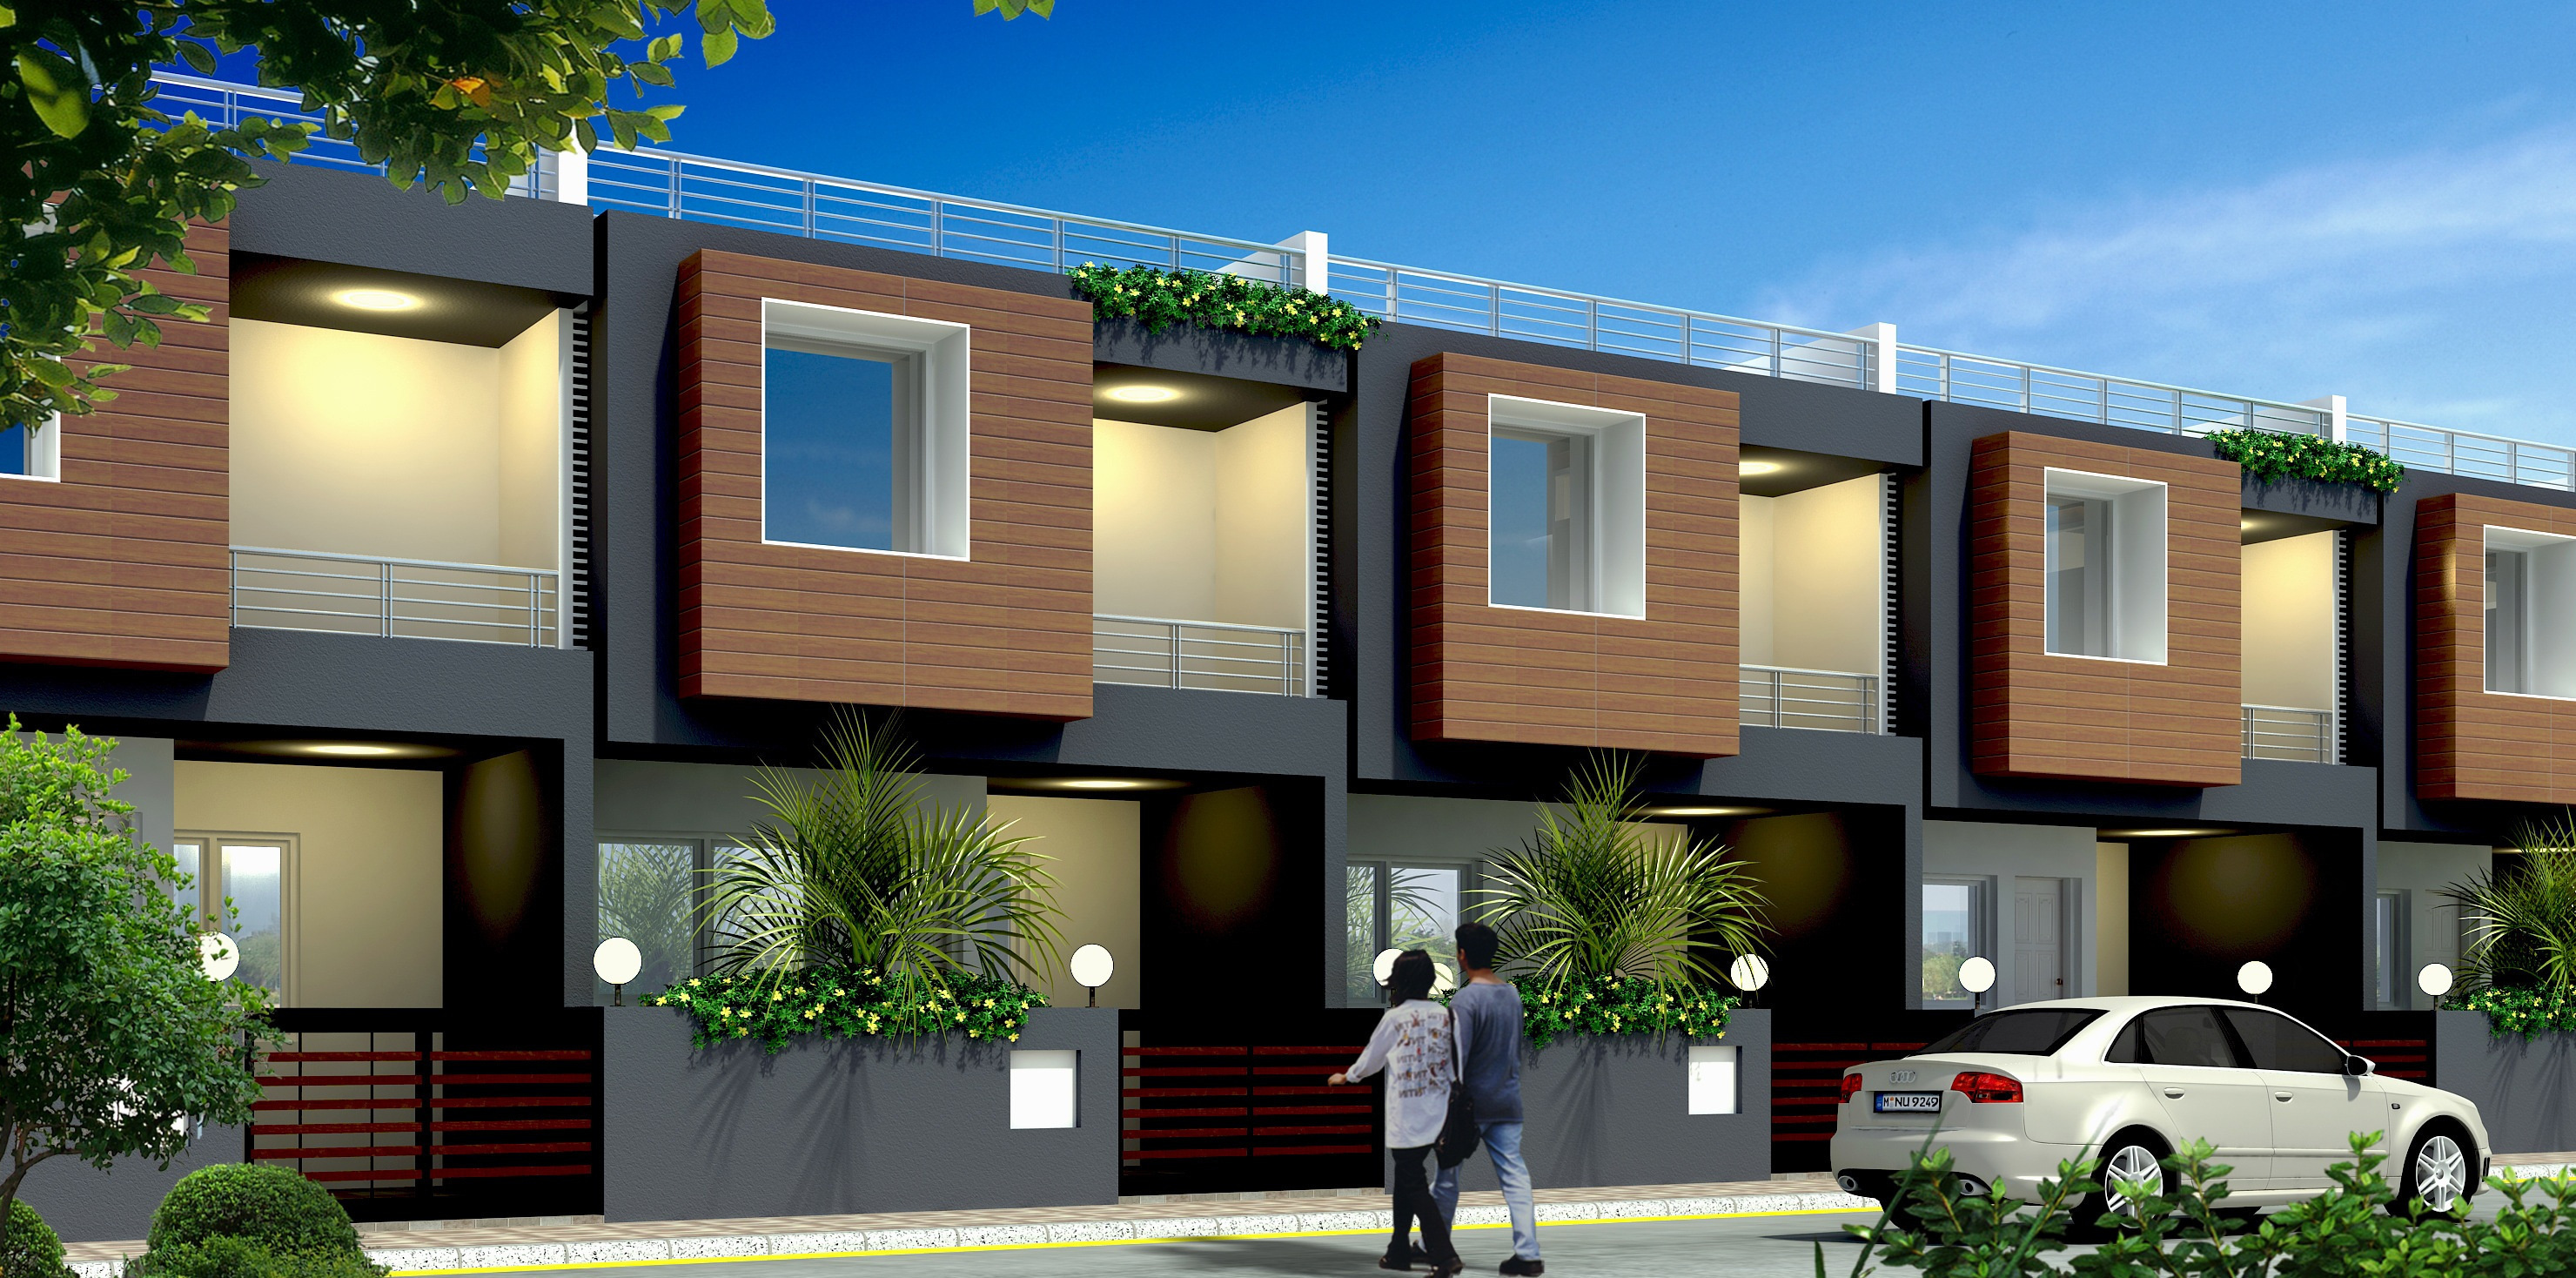 Front Elevation Of Row Houses : Main elevation image of surya group lucknow row